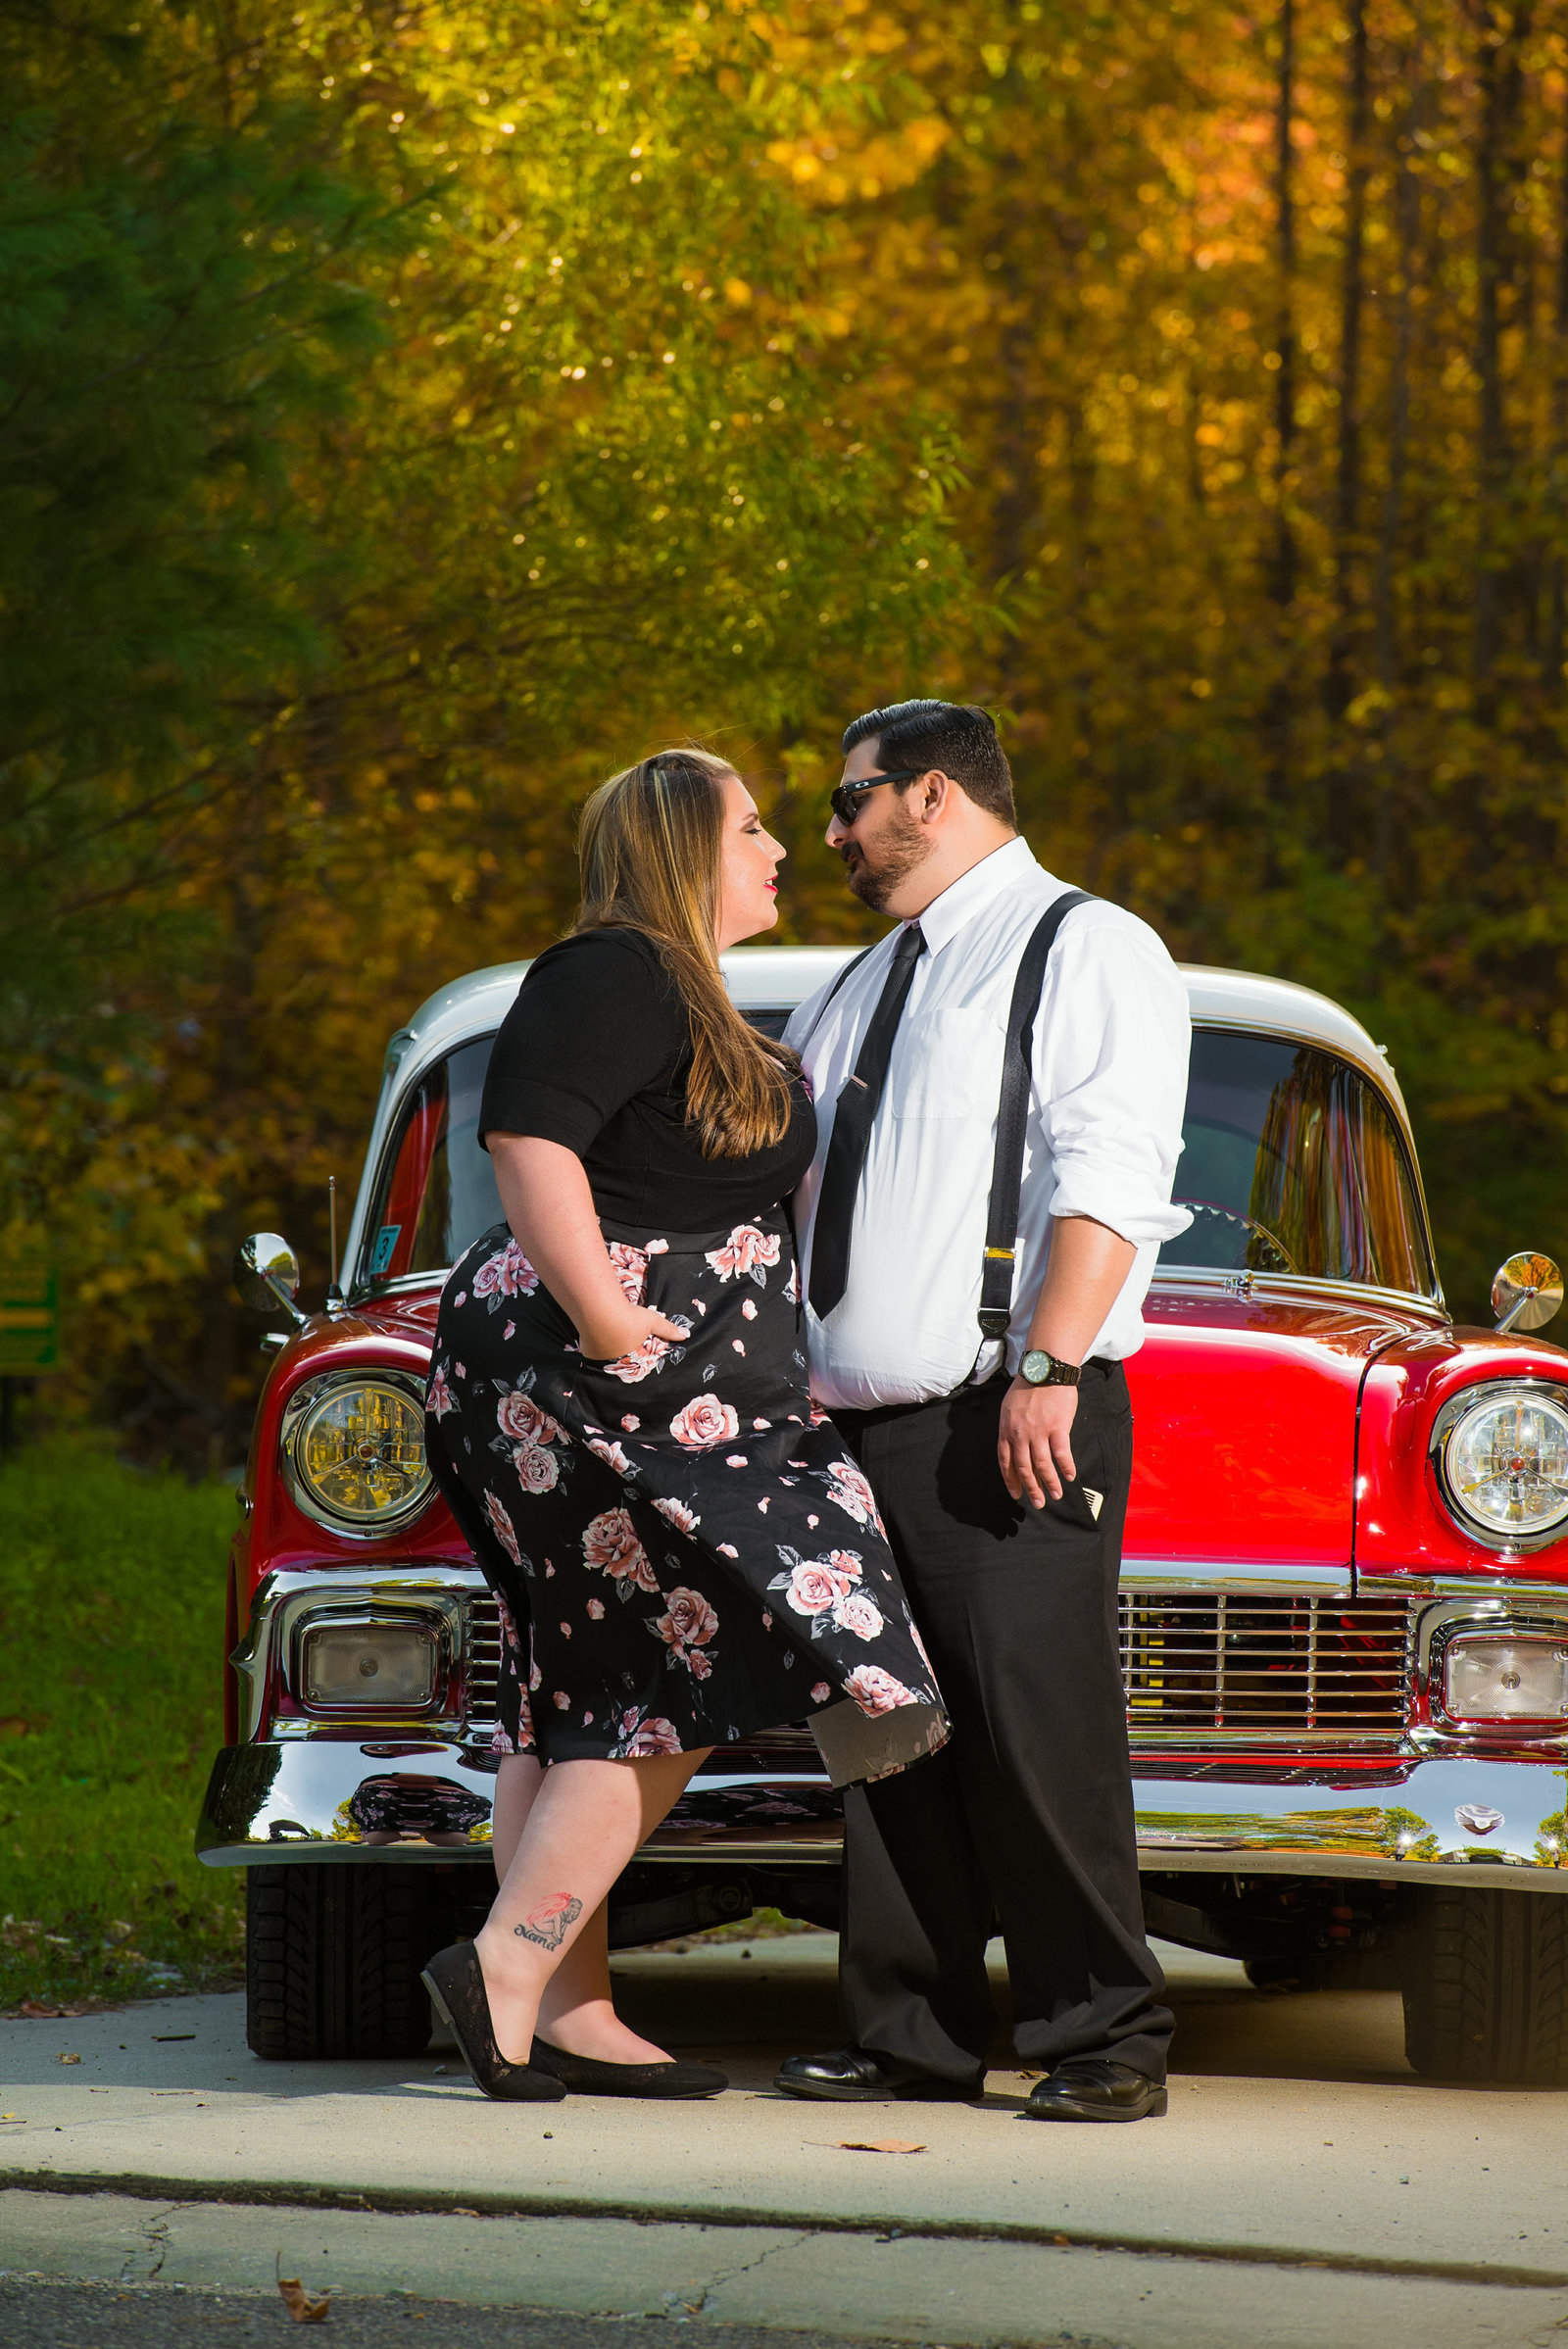 Retro_Pinup_Car_engagement_session_Nj047